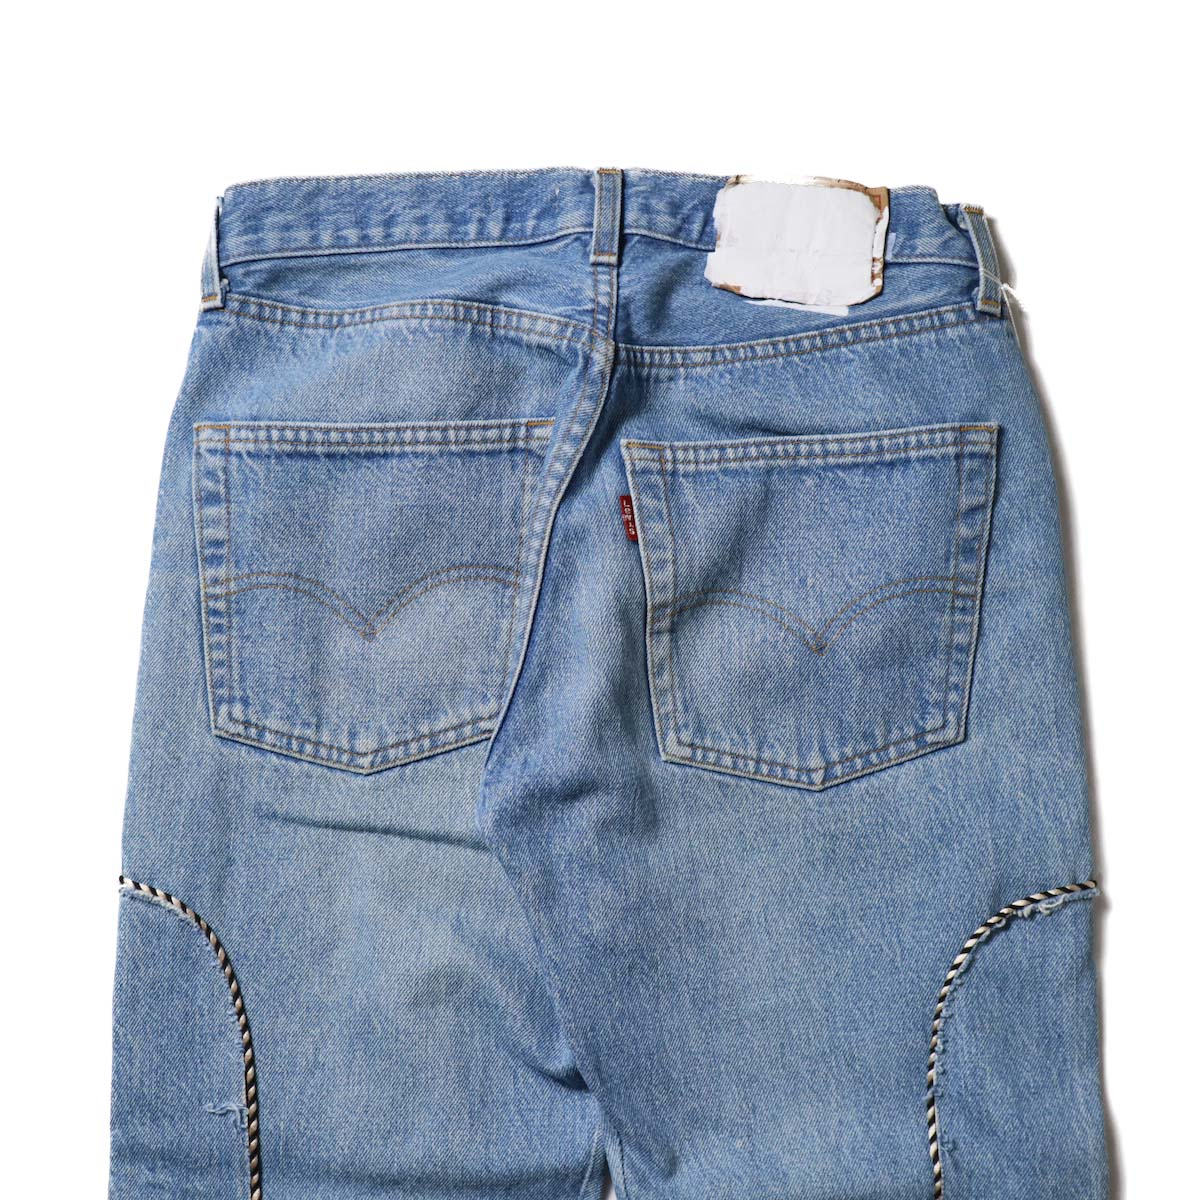 OLD PARK / Western Jeans Blue (Ssize-D)ヒップポケット